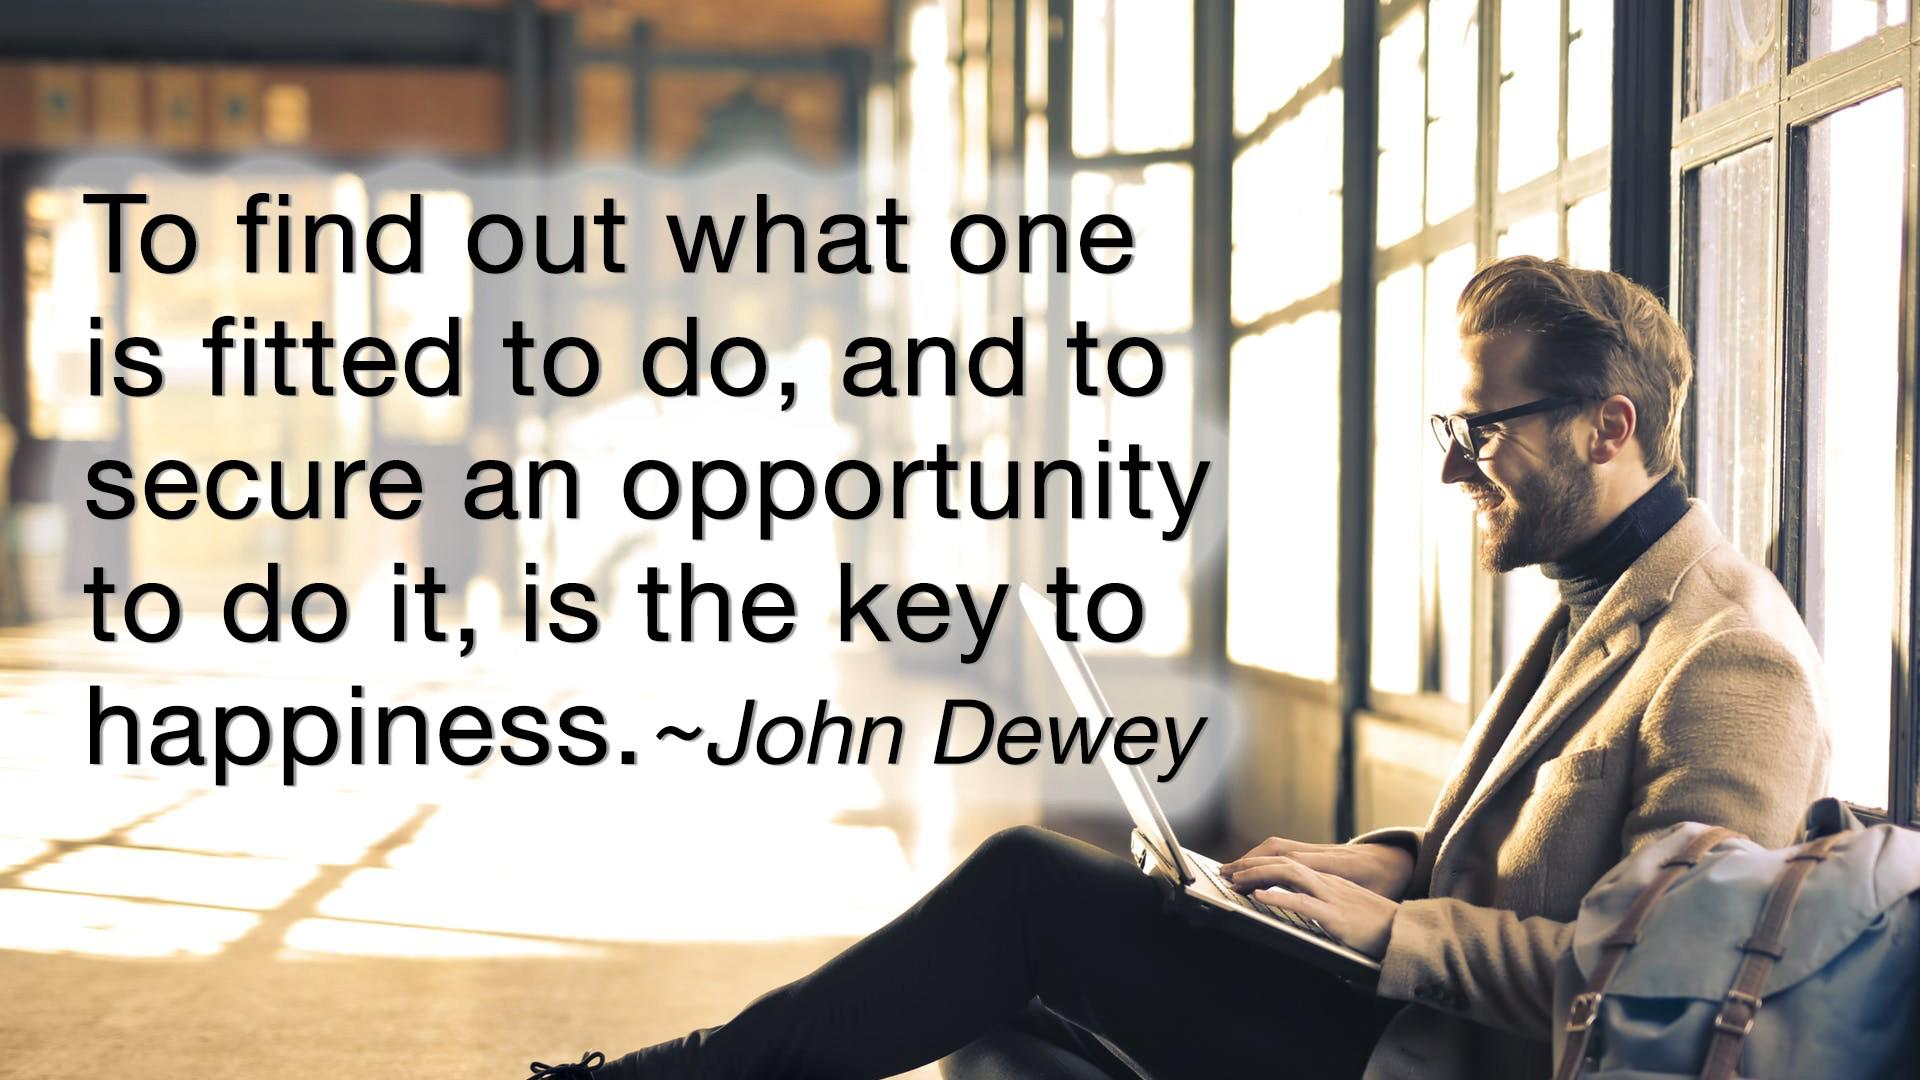 John Dewey Quote - To find out what one is fitted to do, and to secure an opportunity to do it, is the key to happiness.